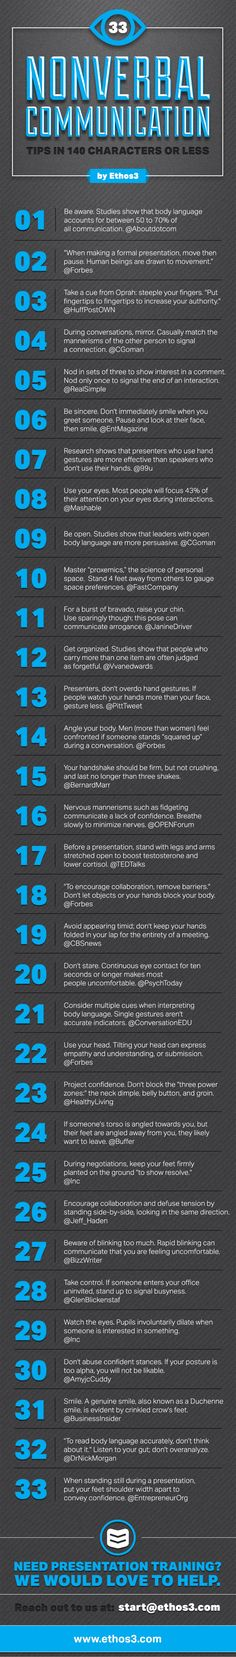 33 Nonverbal Communication Tips, in 140 characters or less by Ethos3 | Presentation Design and Training via slideshare